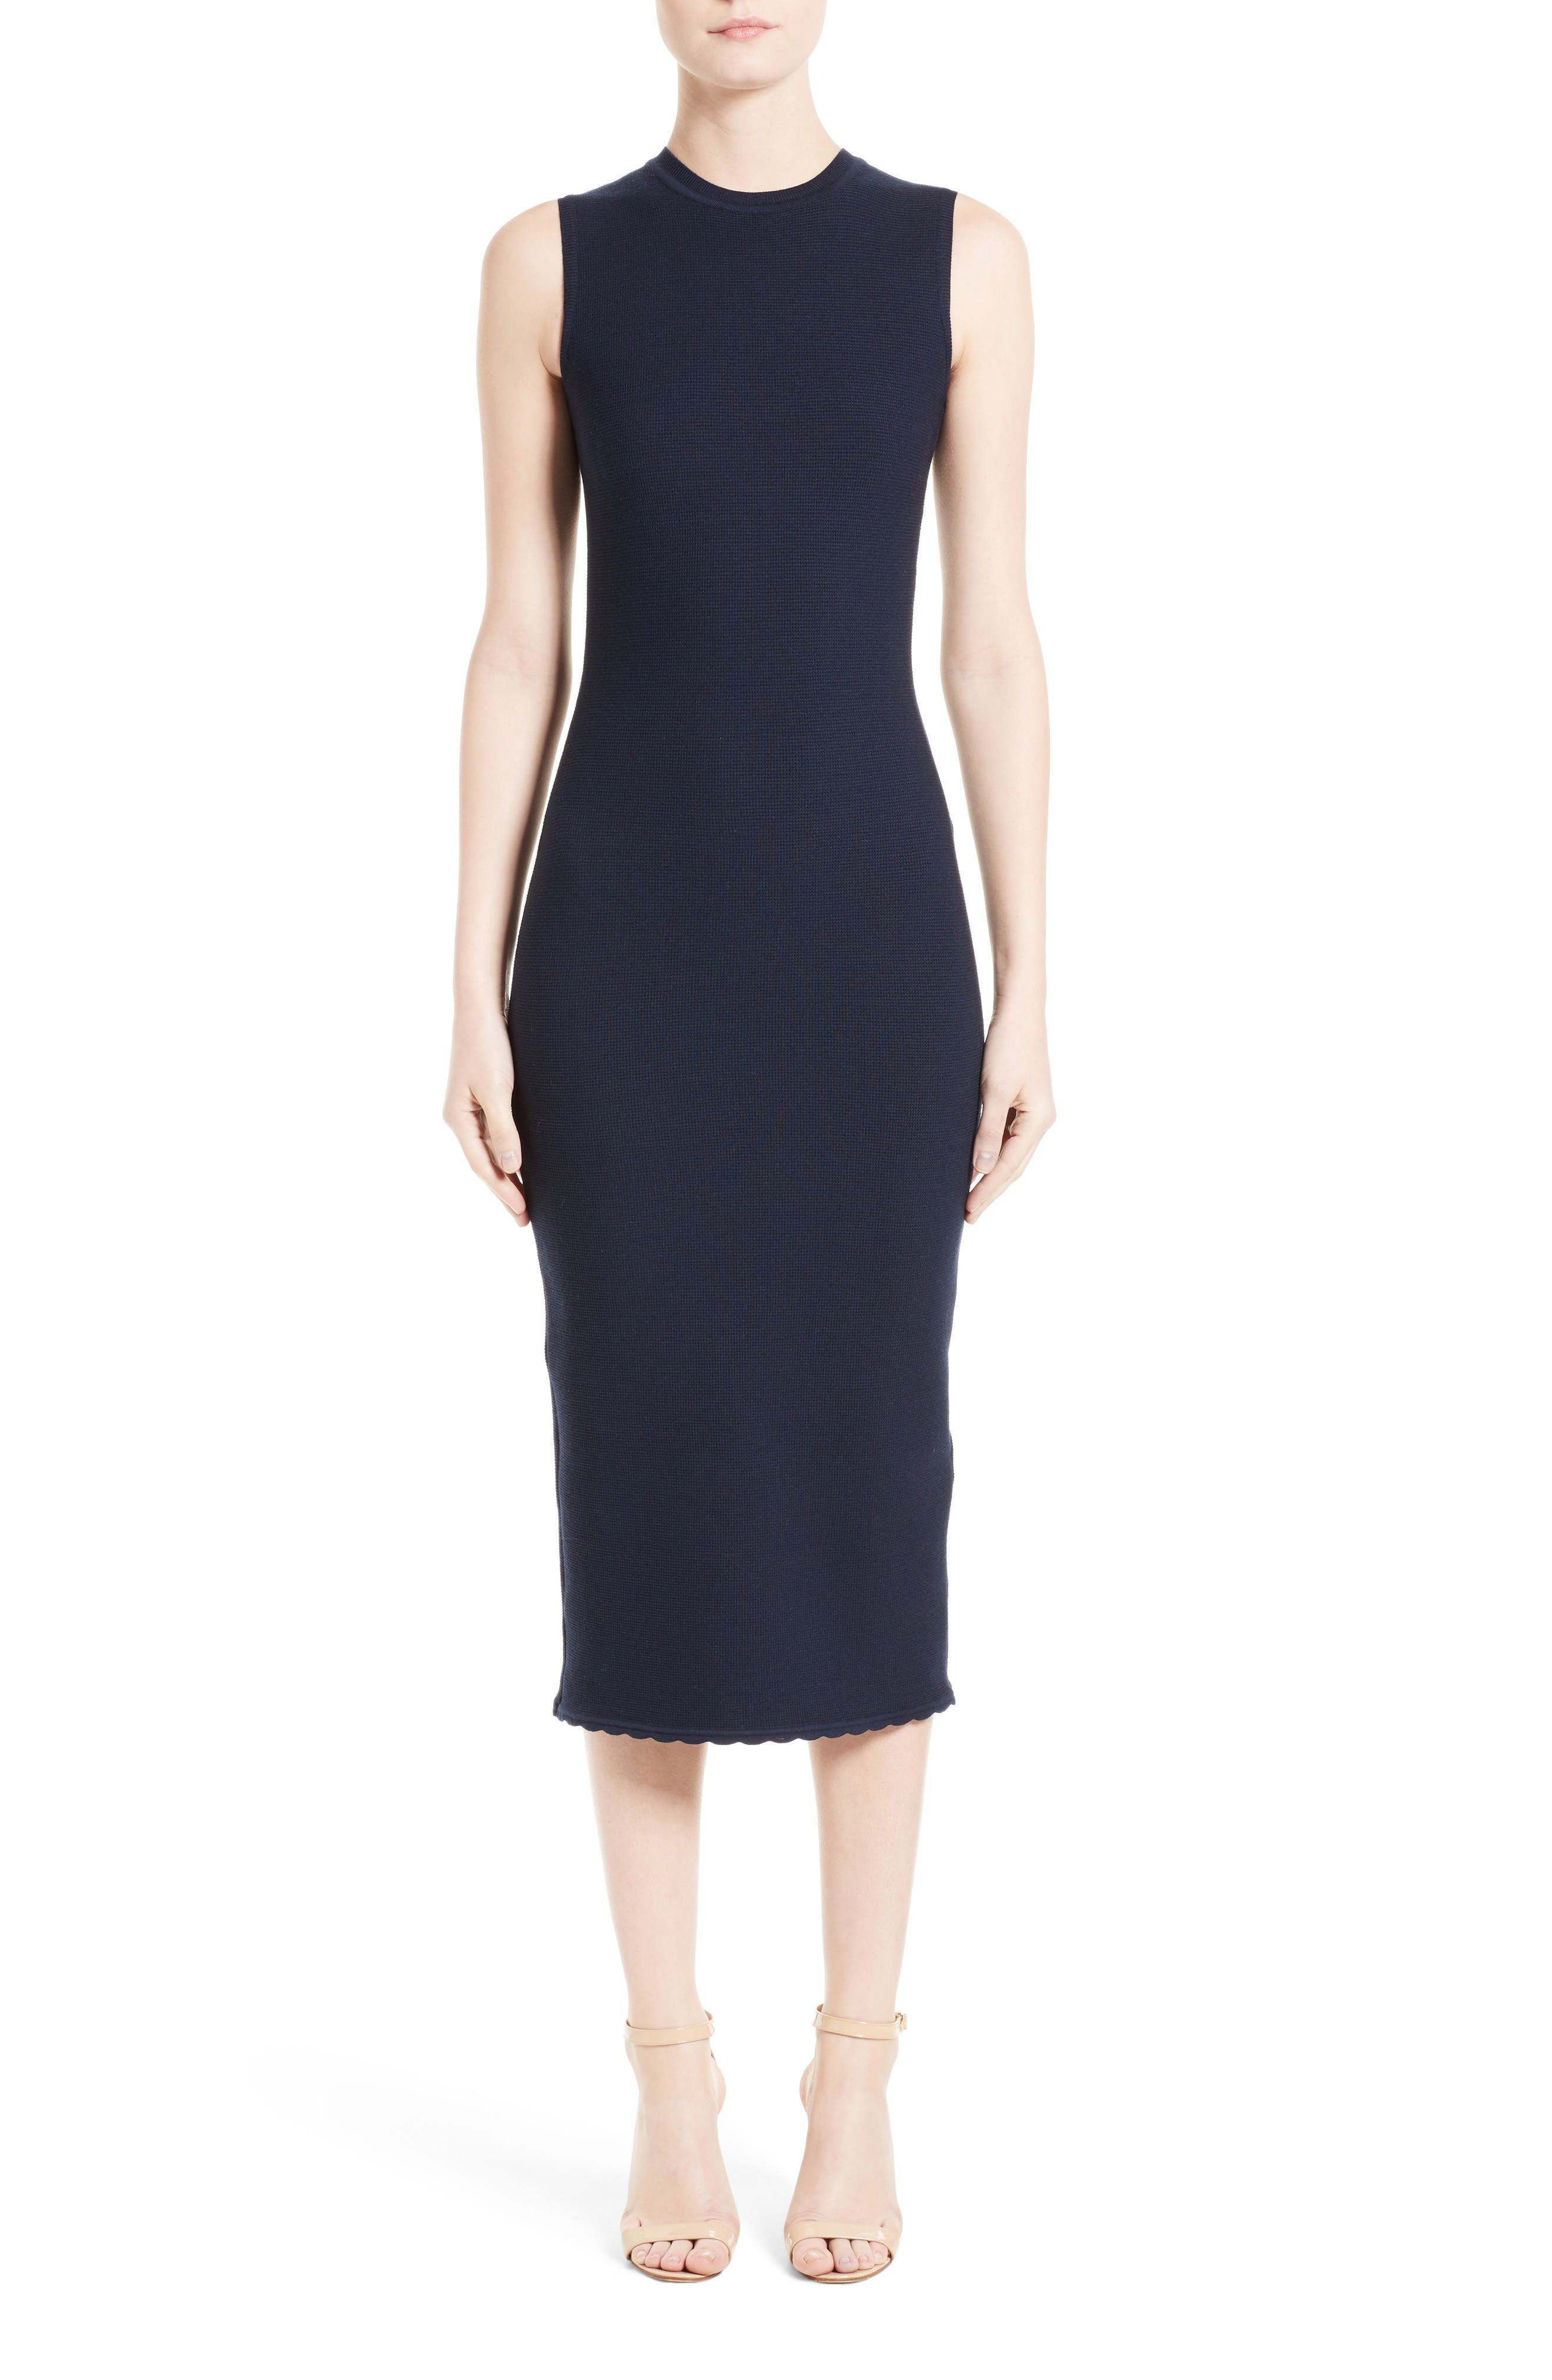 Wool Blend Knit Scallop Dress,                         Main,                         color, Navy